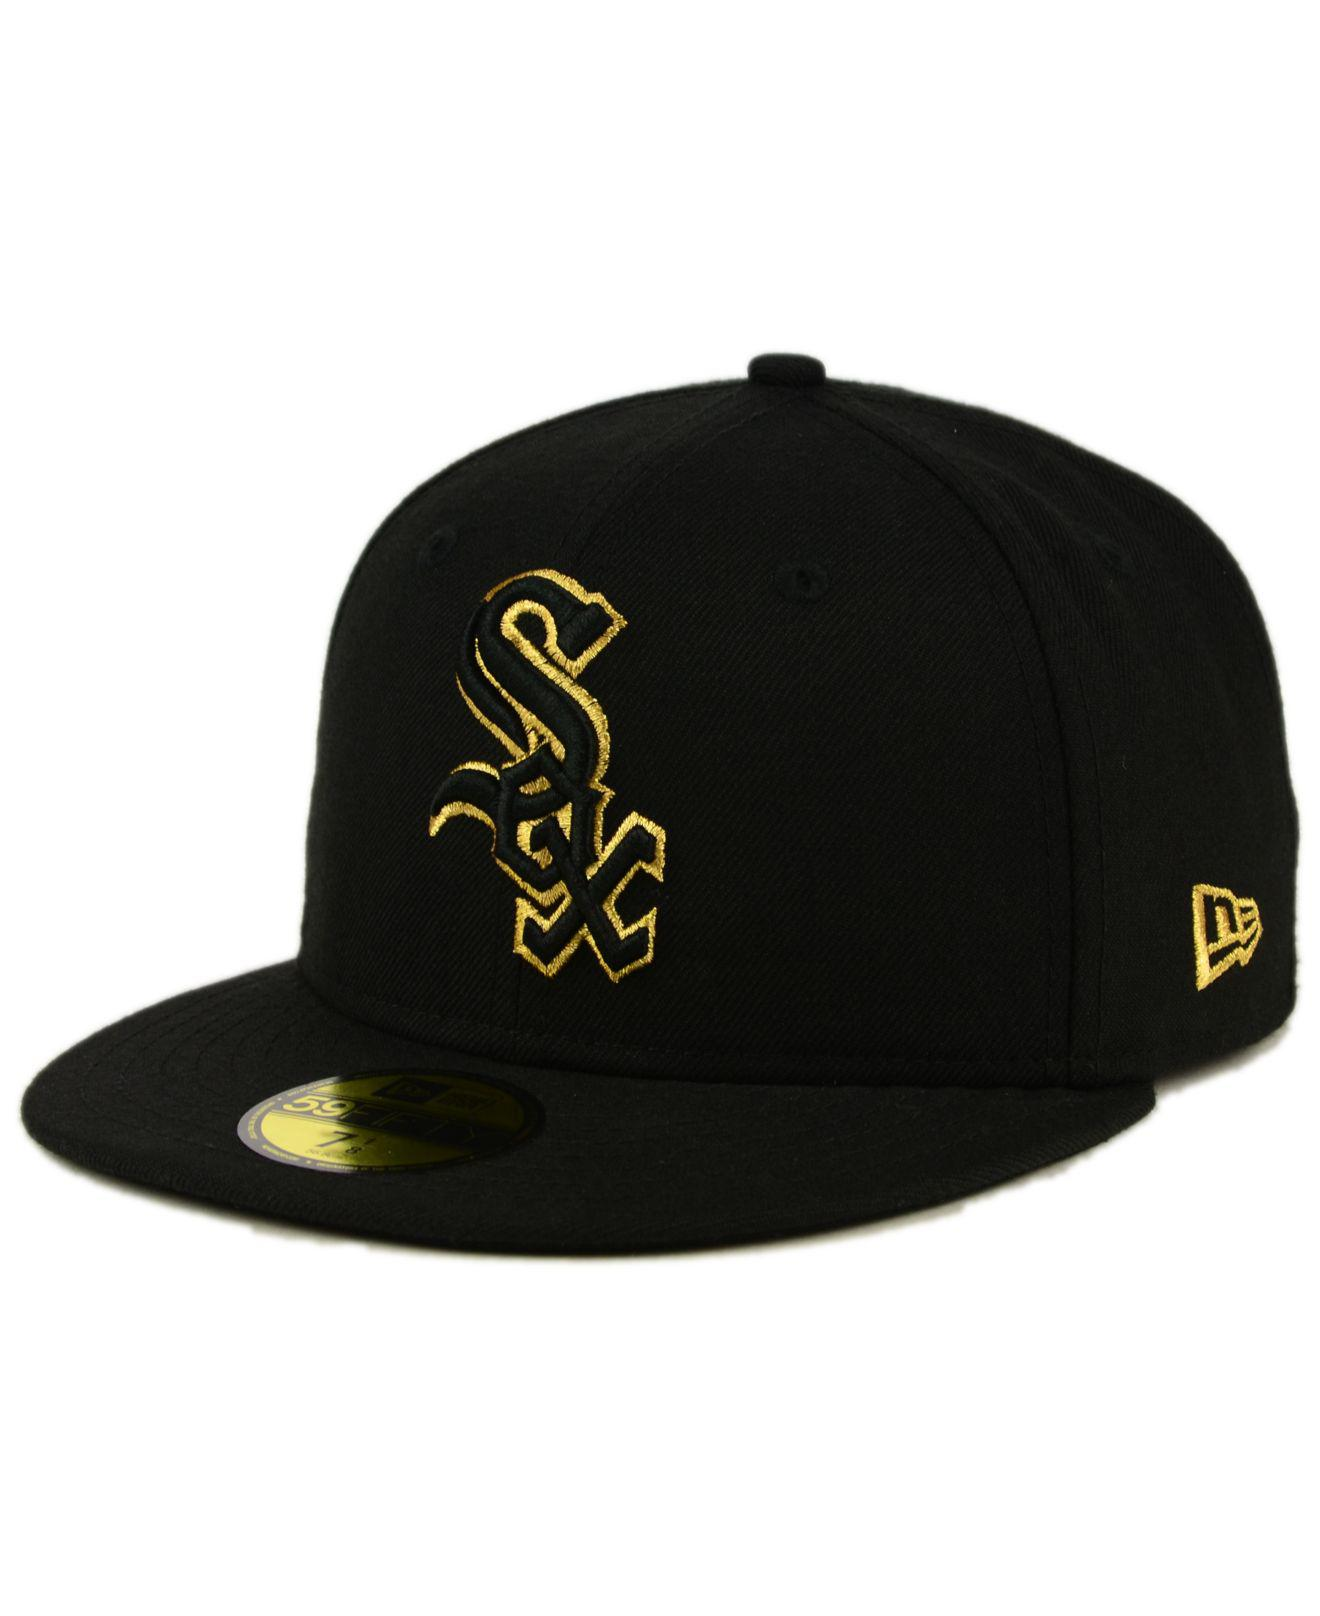 1d9e21d1210 Lyst - Ktz Chicago White Sox Black On Metallic Gold 59fifty Fitted ...